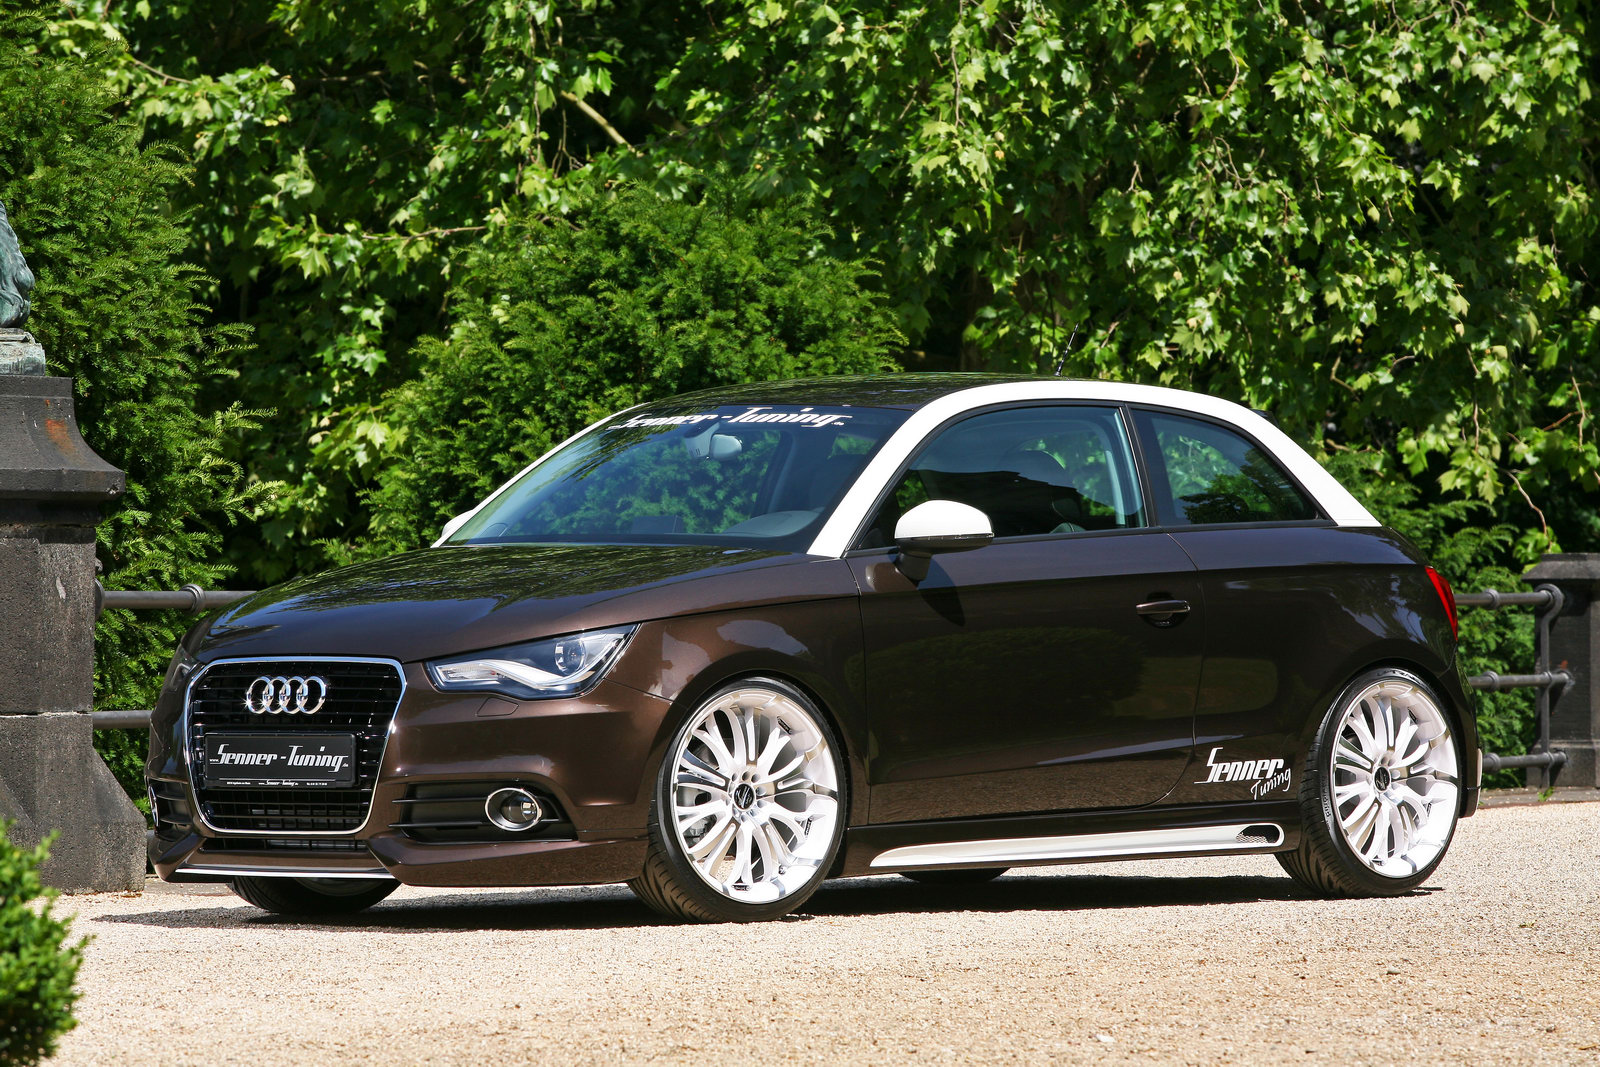 senner tuning unveils 165 hp audi a1 1 4 tfsi autoevolution. Black Bedroom Furniture Sets. Home Design Ideas